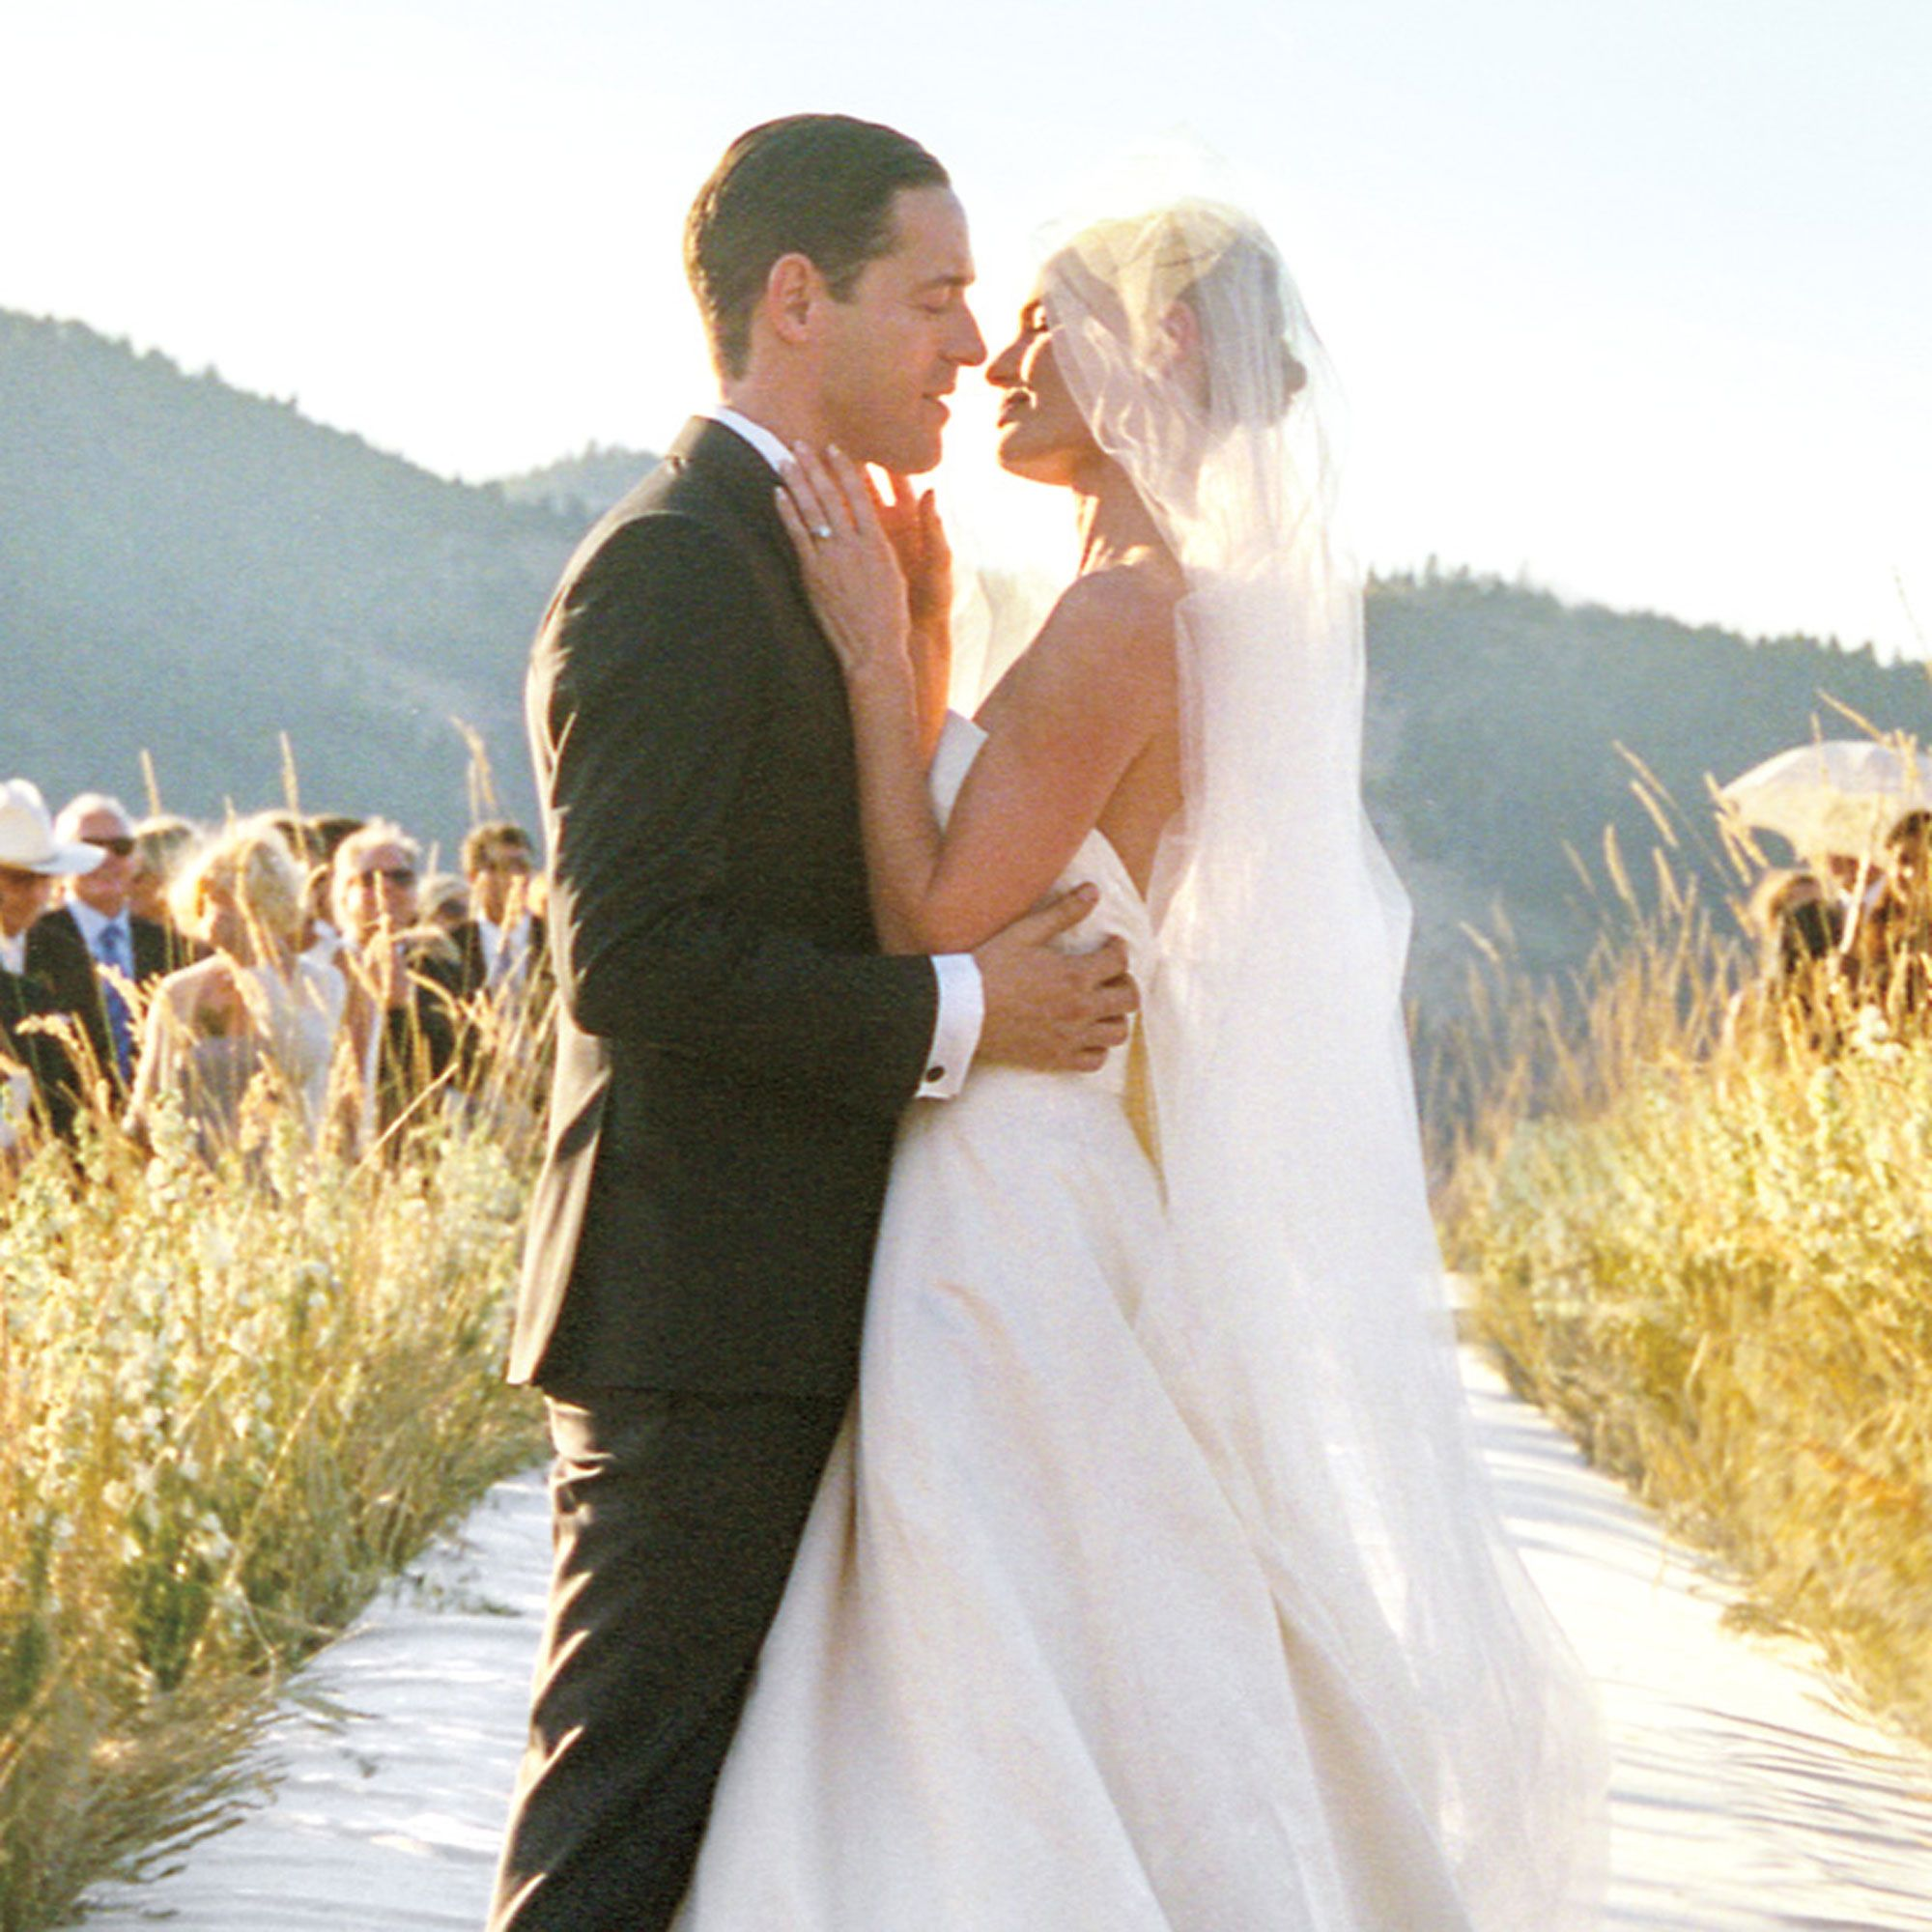 Kate Bosworth and Michael Polish on their wedding day, Source: Harper's Bazaar